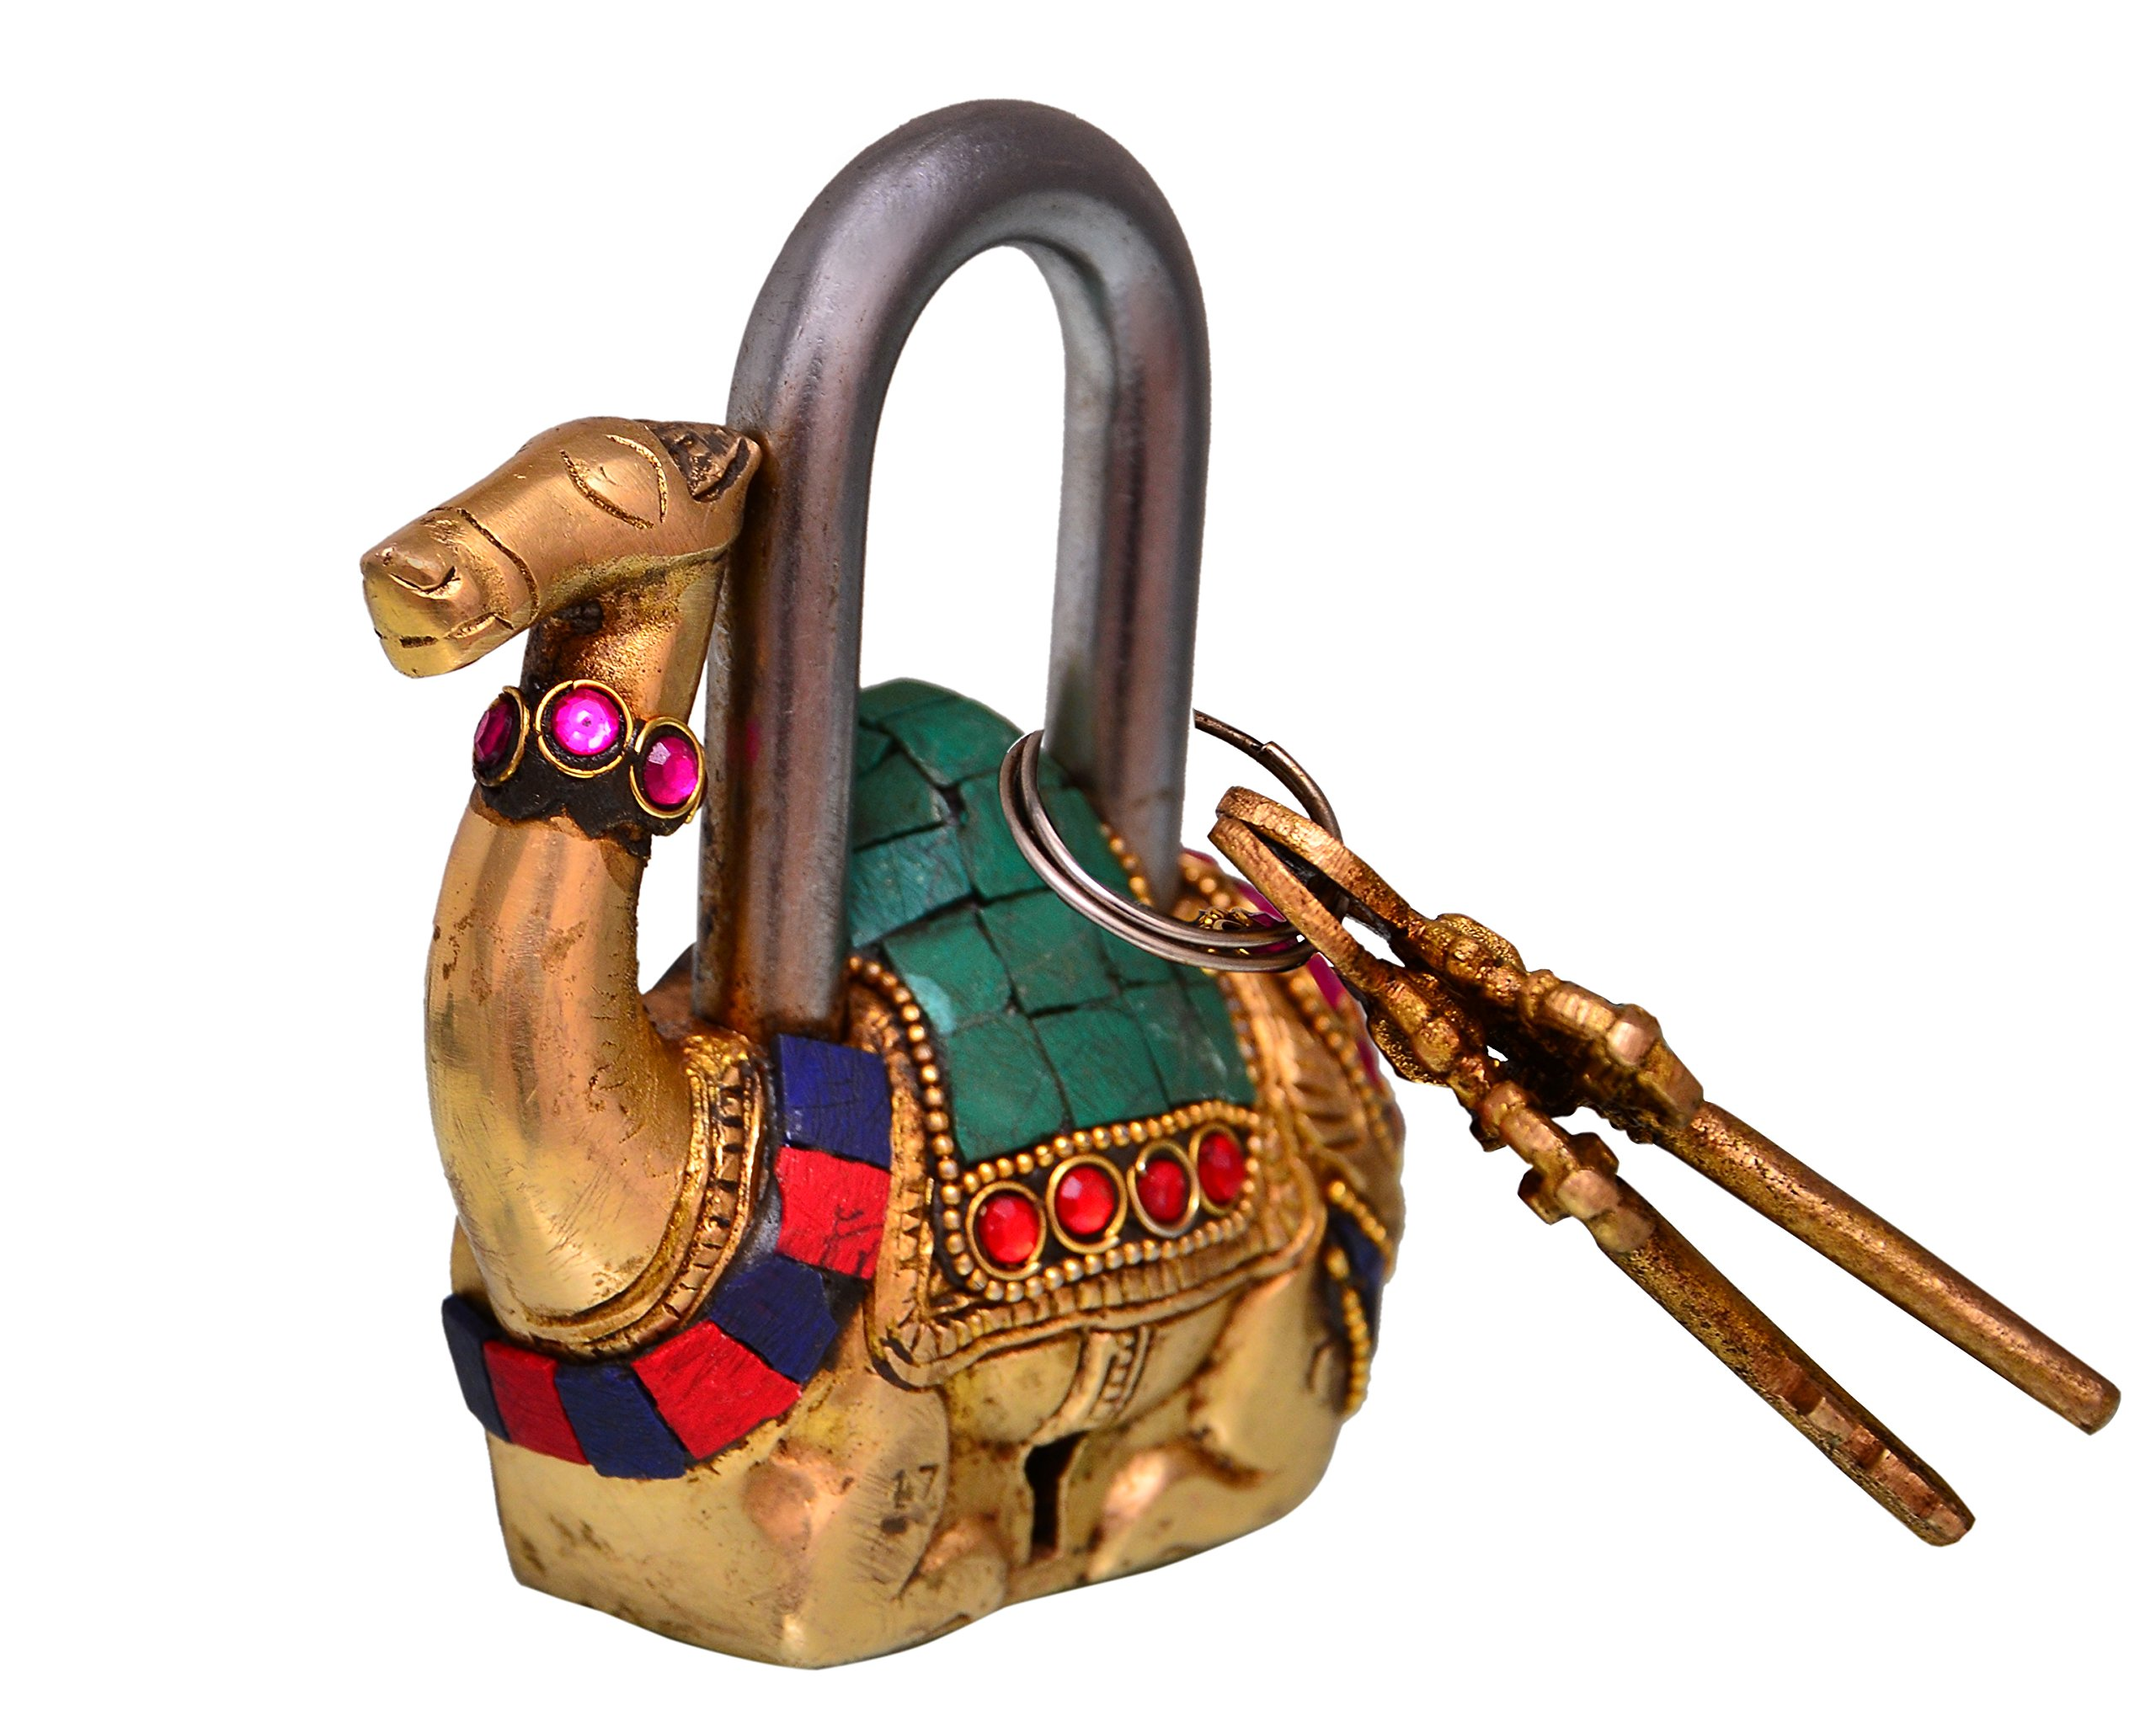 Purpledip Camel Shaped Brass Lock Padlock: Handmade Antique Design With Colorful Gemstone Work; Unique Collectible Combination Of Style & Security (10685) by purpledip (Image #2)